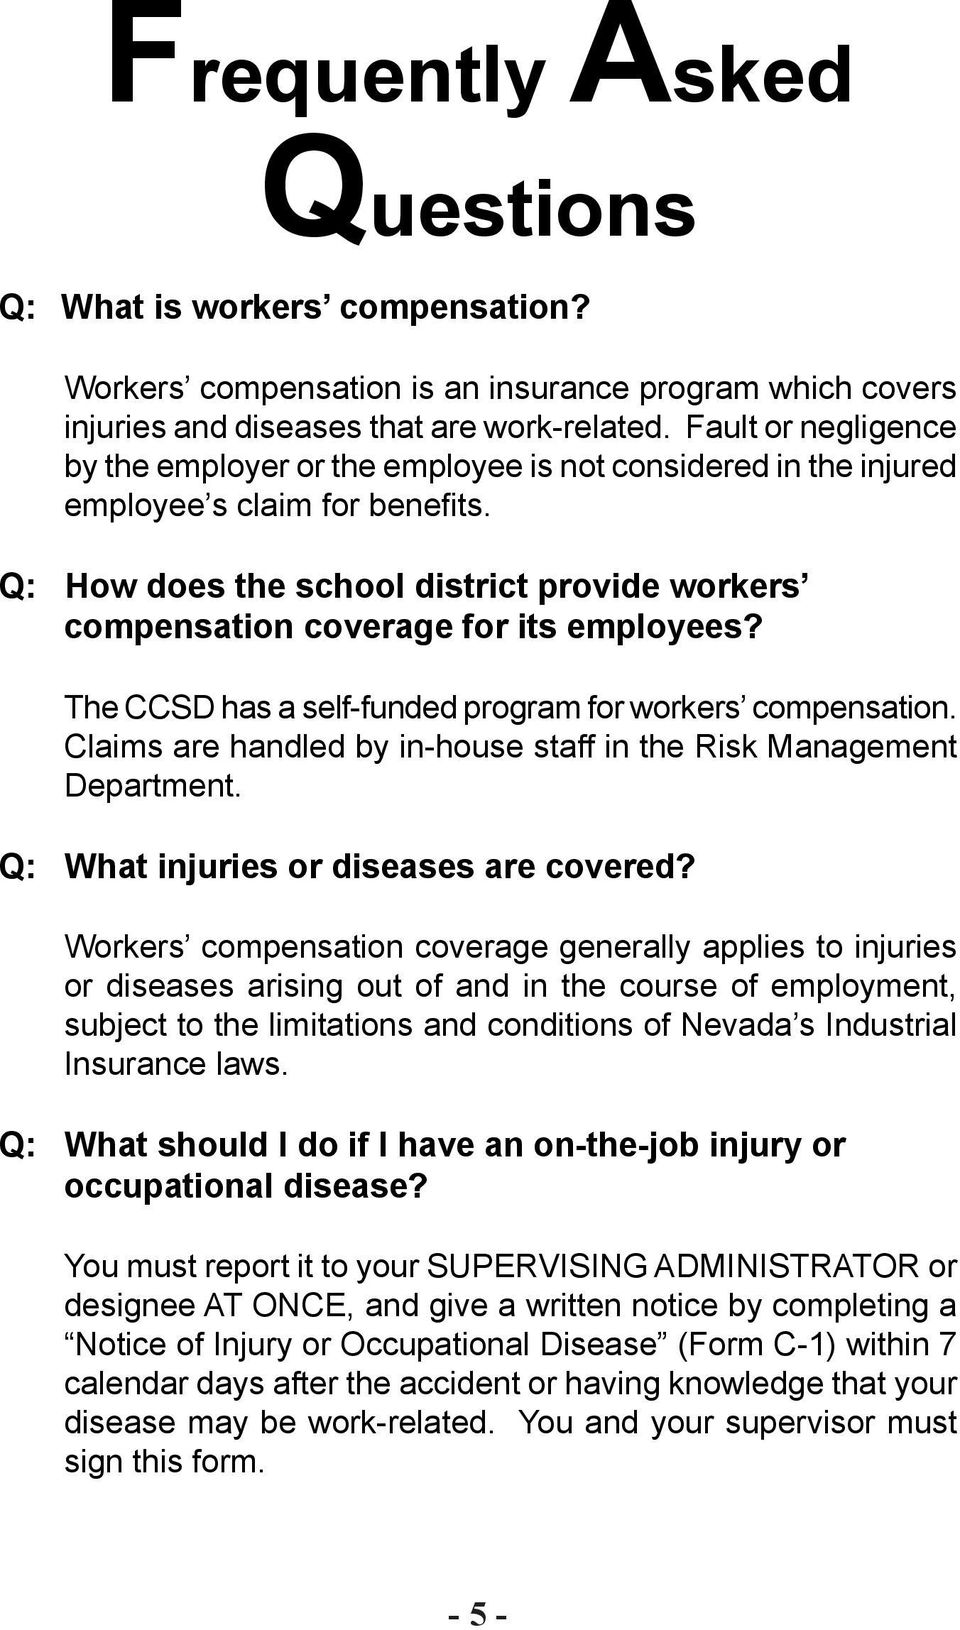 AN EMPLOYEE S GUIDE TO WORKERS COMPENSATION - PDF